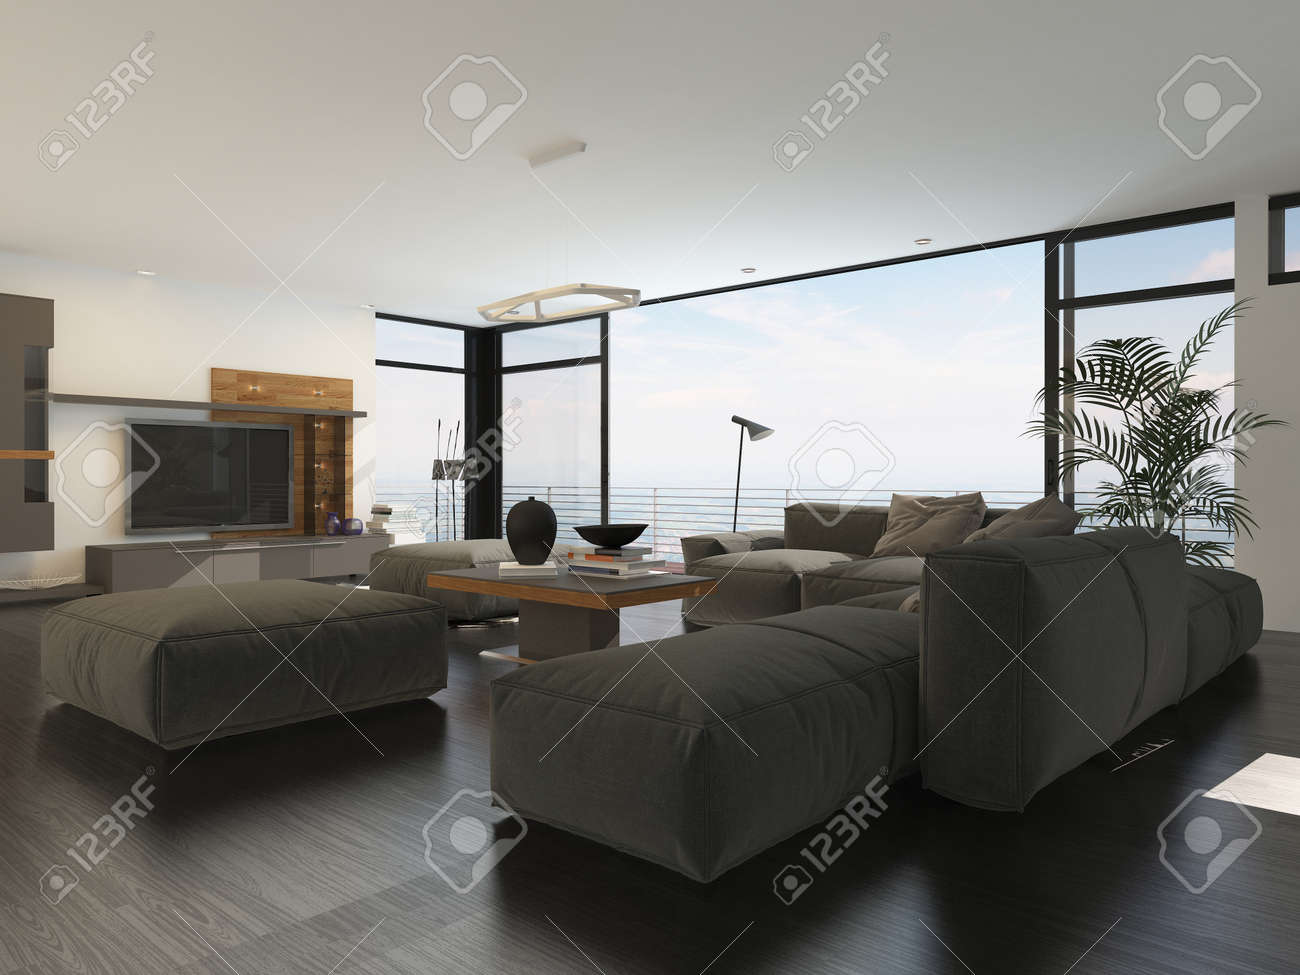 Modern Living Room Interior With Grey And White Decor A Large Upholstered Lounge Suite Around